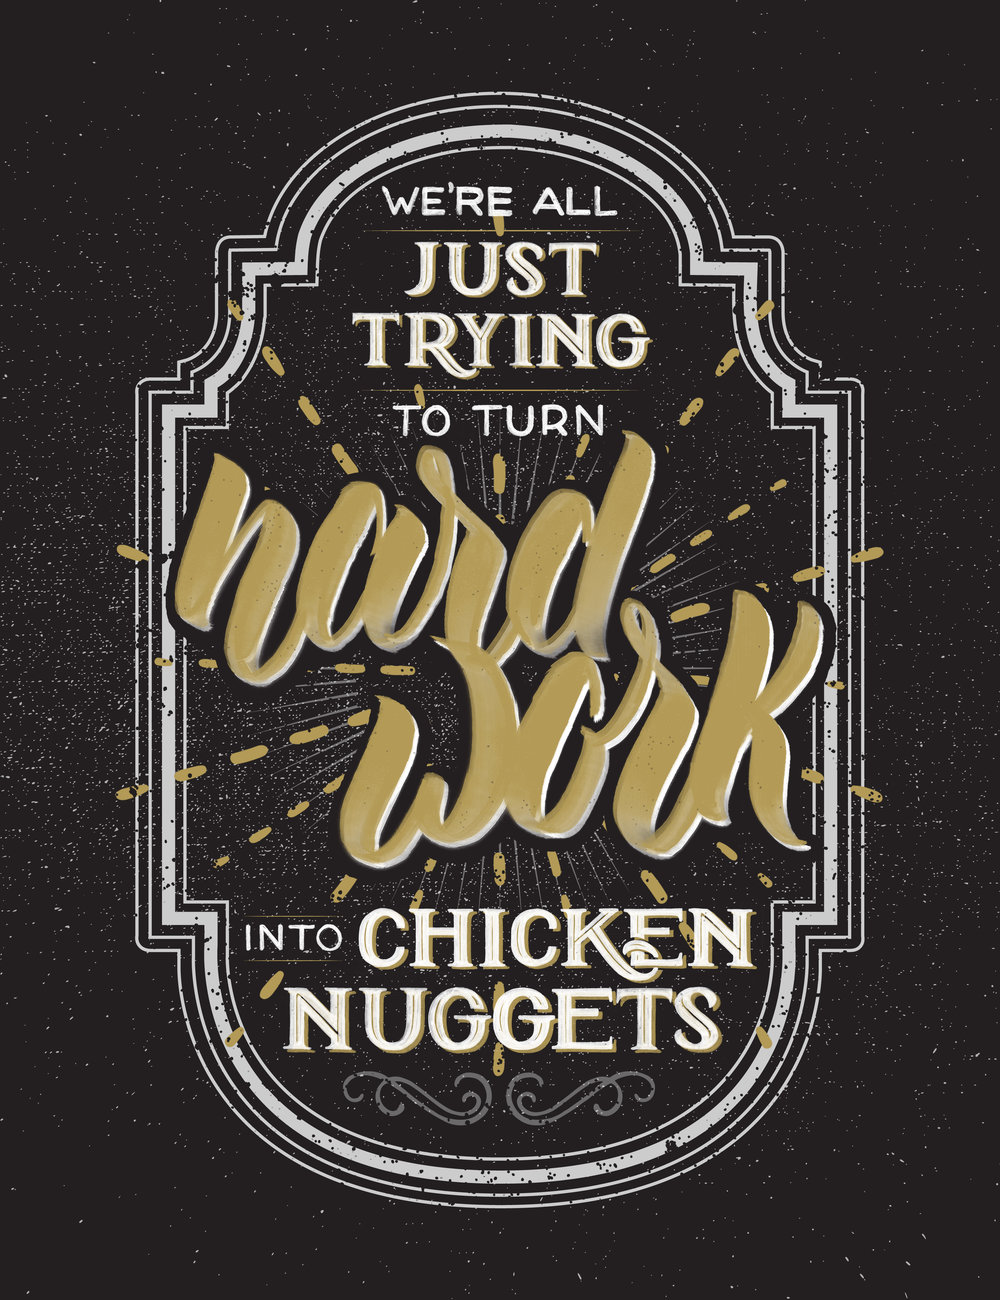 chicken nuggets2.jpg